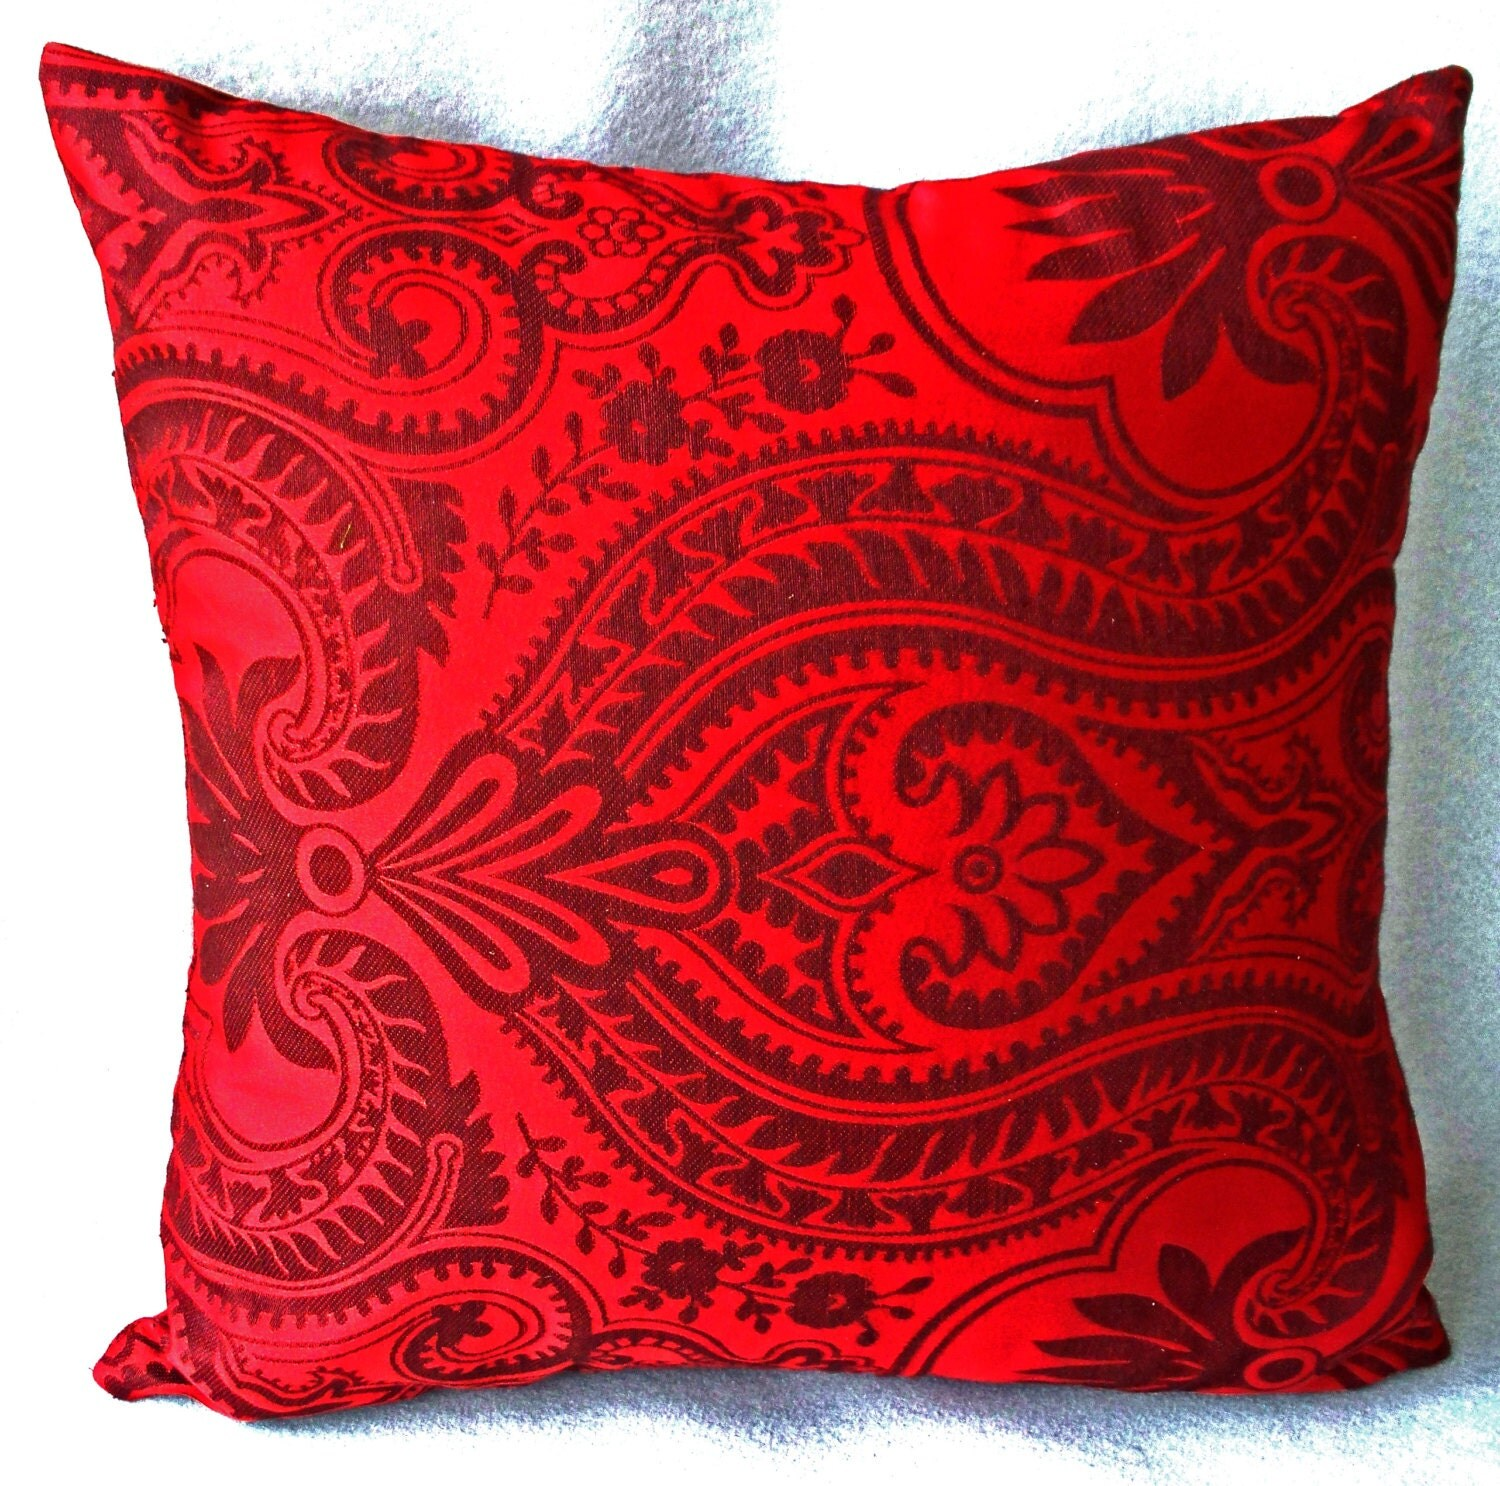 Red pillow Red pillow cover floral throw decorative Pillows